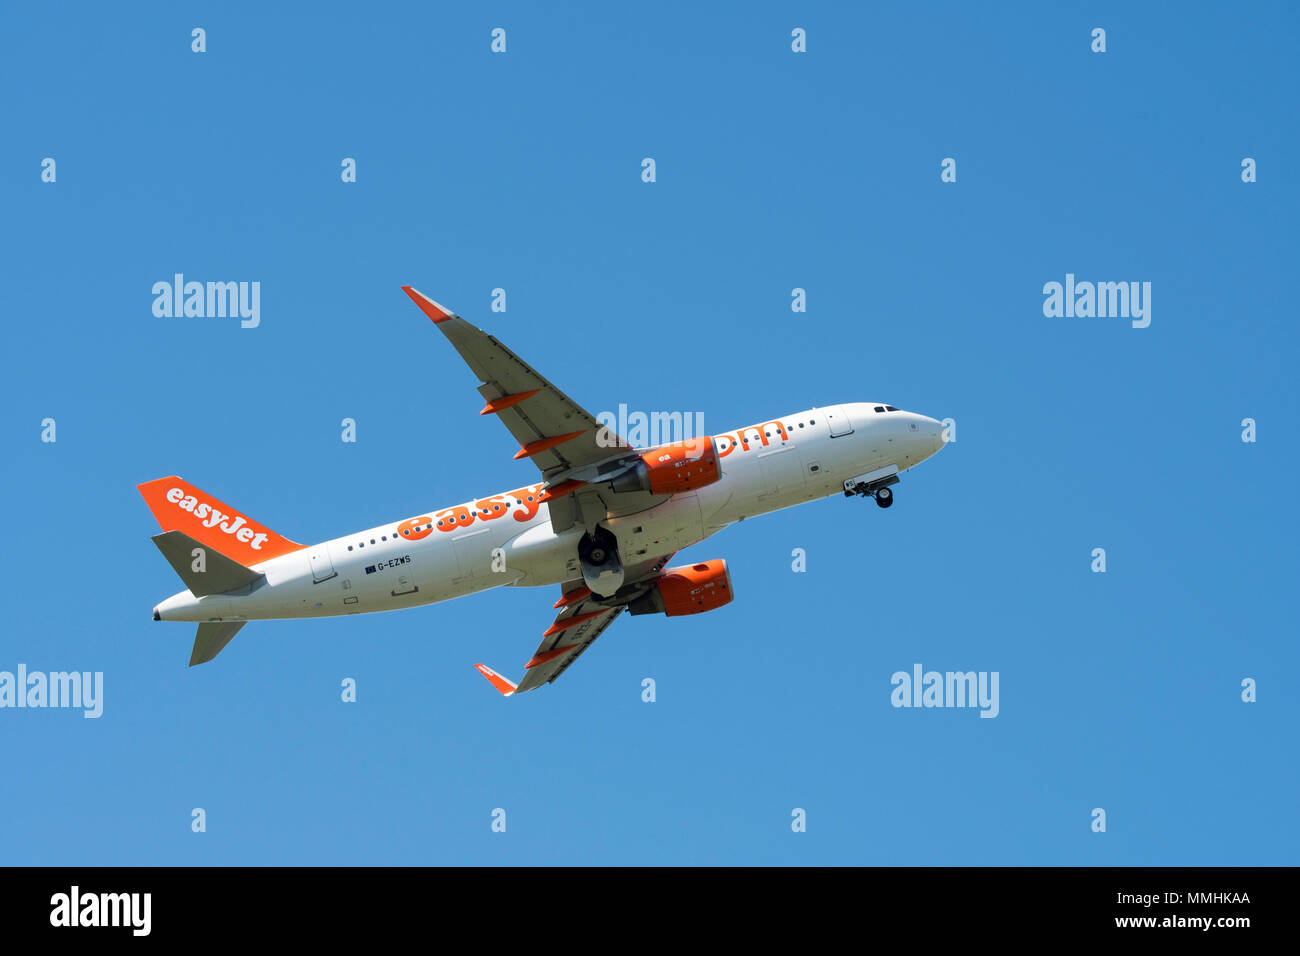 Airbus A320-214 WL, commercial passenger twin-engine jet airliner from British low-cost carrier airline EasyJet in flight against blue sky Stock Photo